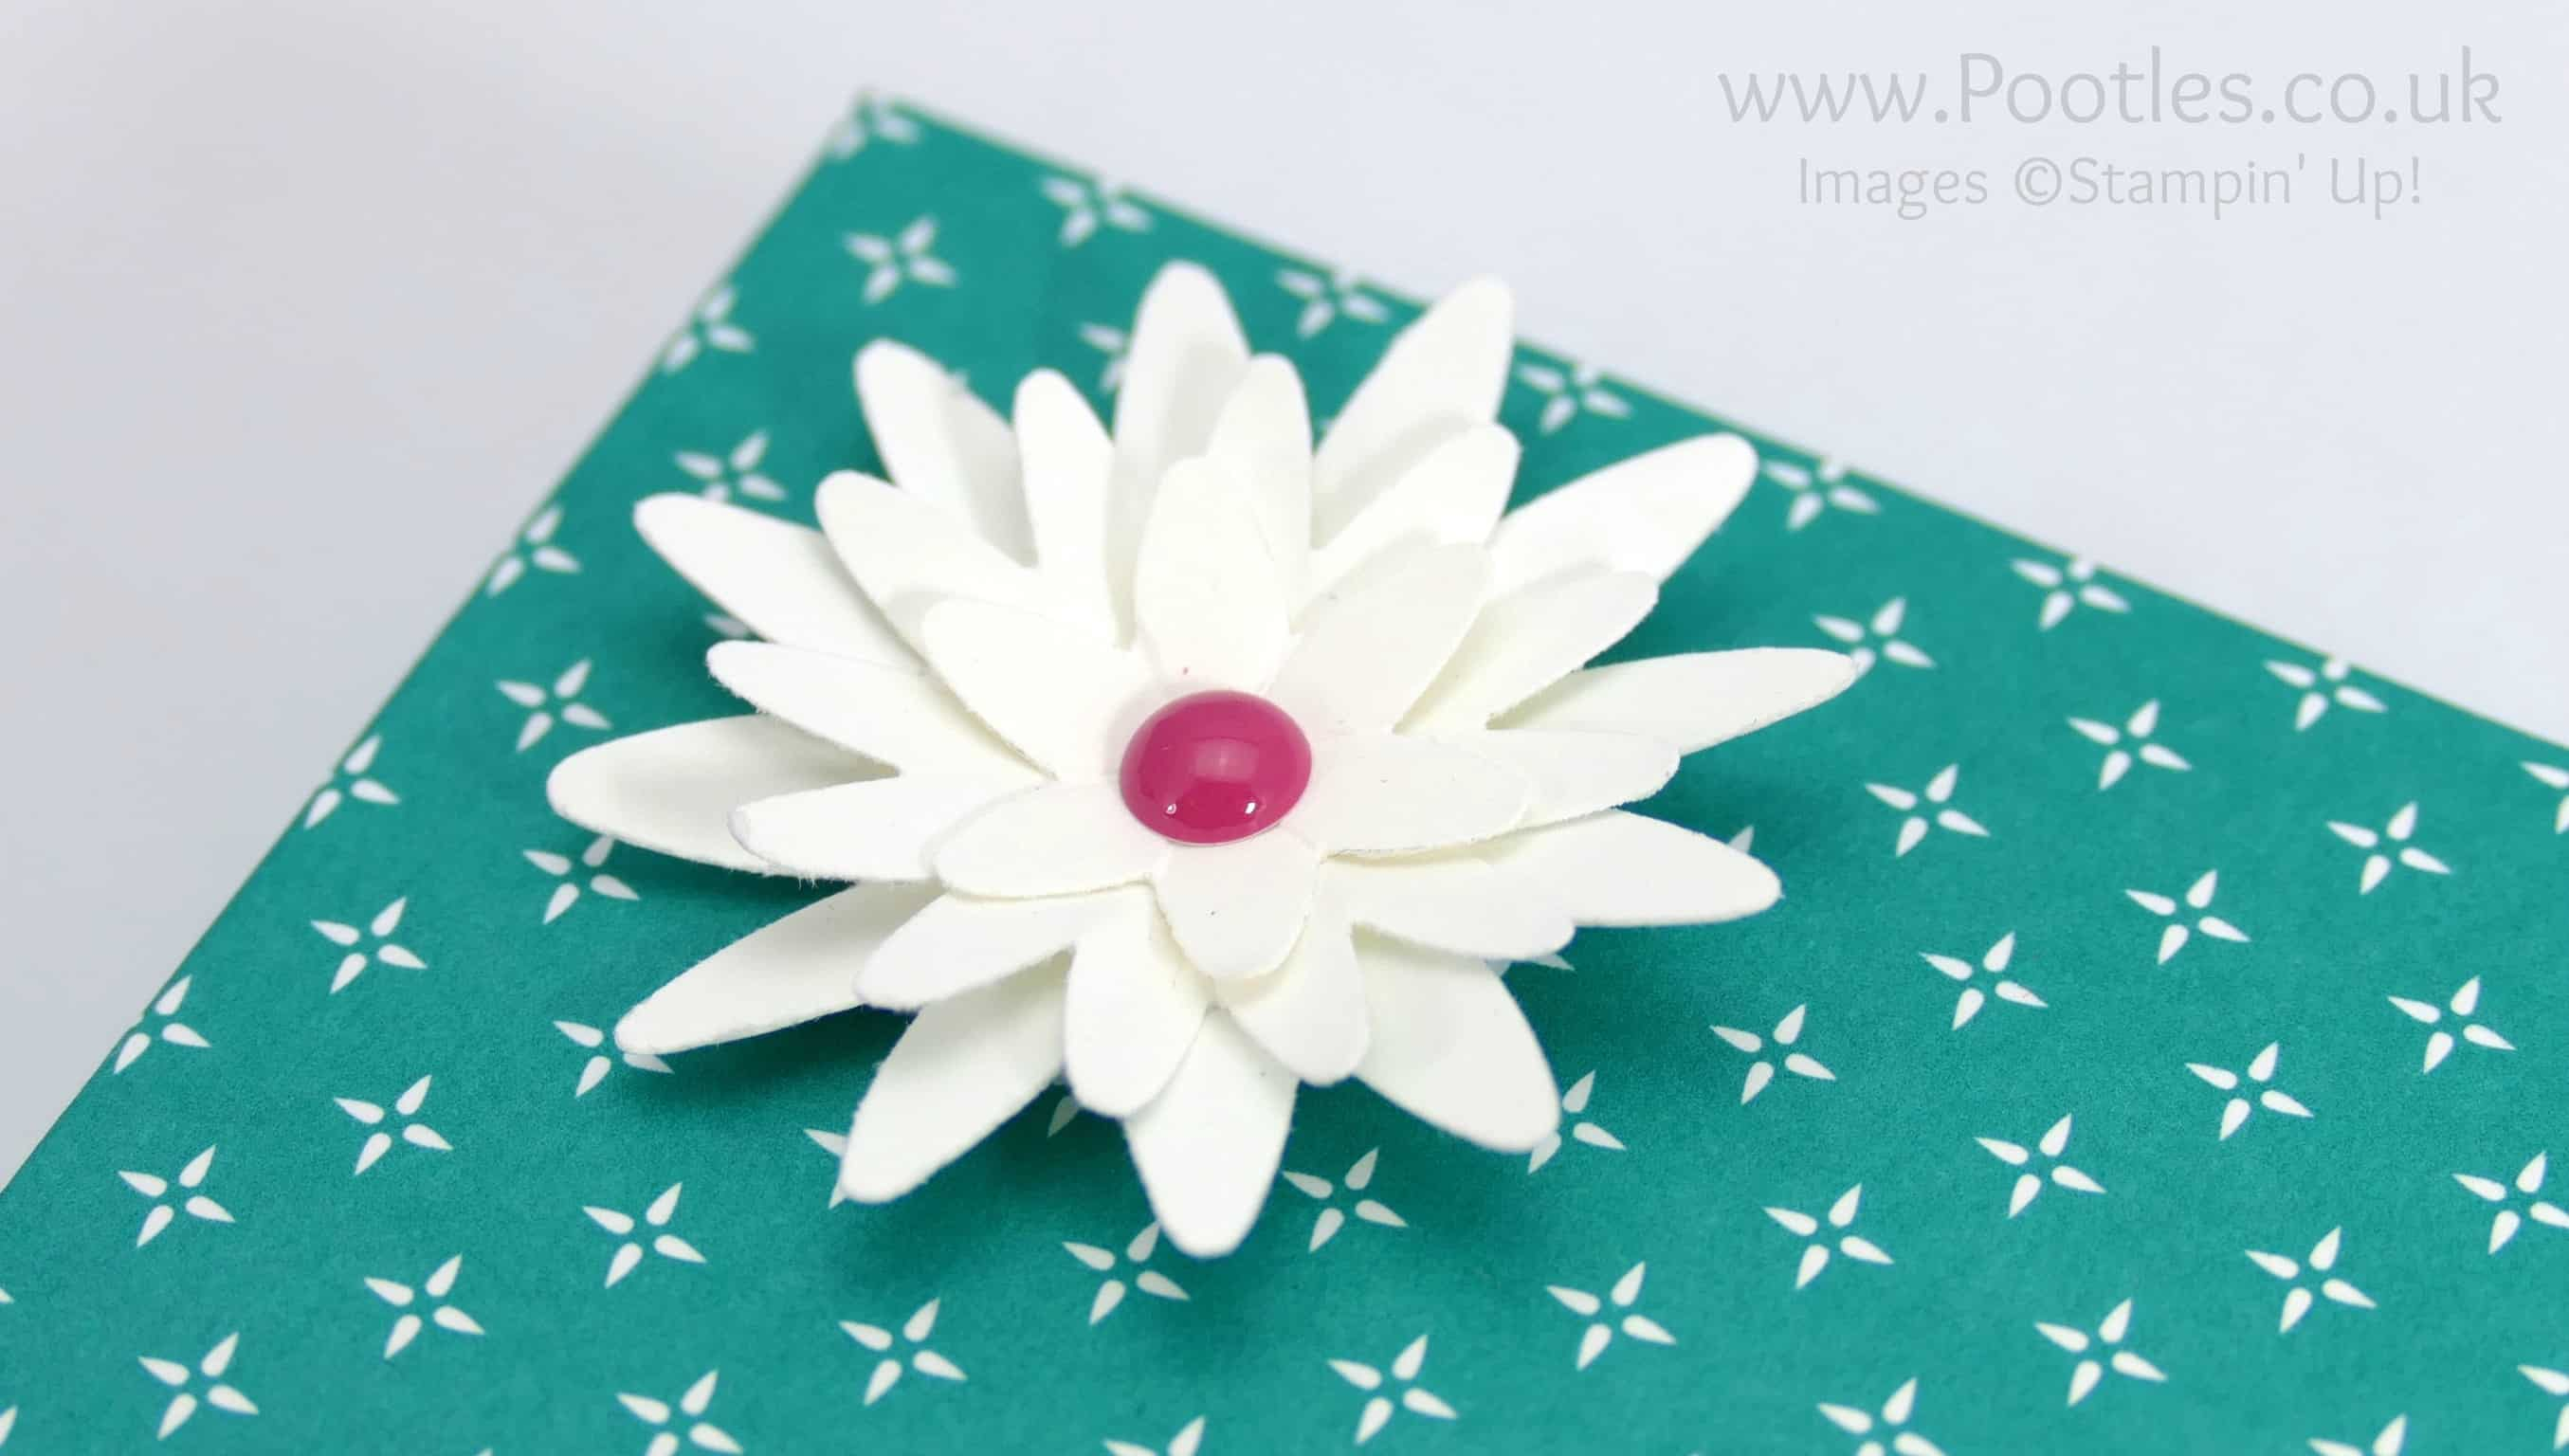 Pootle's SpringWatch Reinforced DSP Lidded Box Tutorial